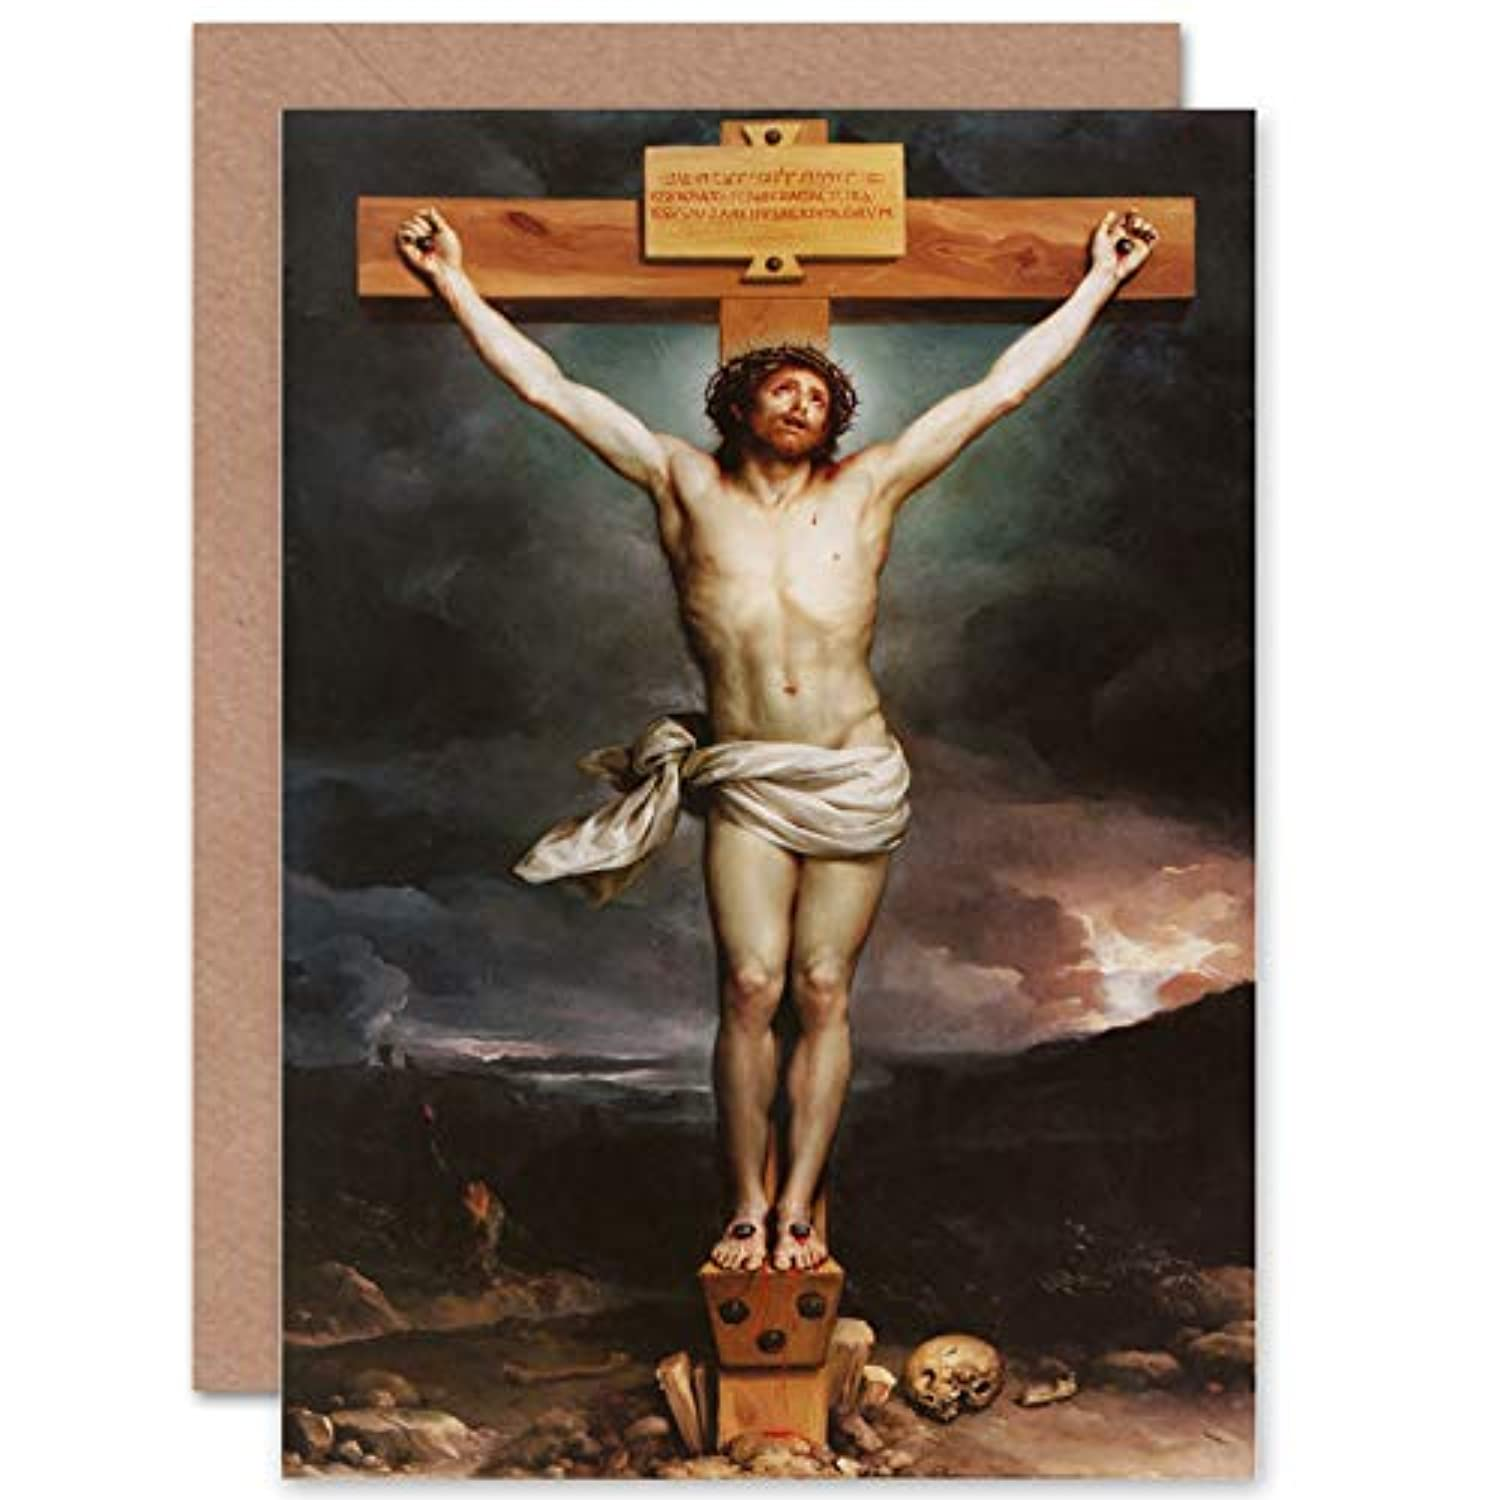 CARD GREETING GIFT PAINTING ALLEGORY BIBLICAL MENGS CHRIST ON THE CROSS 贈り物ペイントアレゴリーキリストクロス